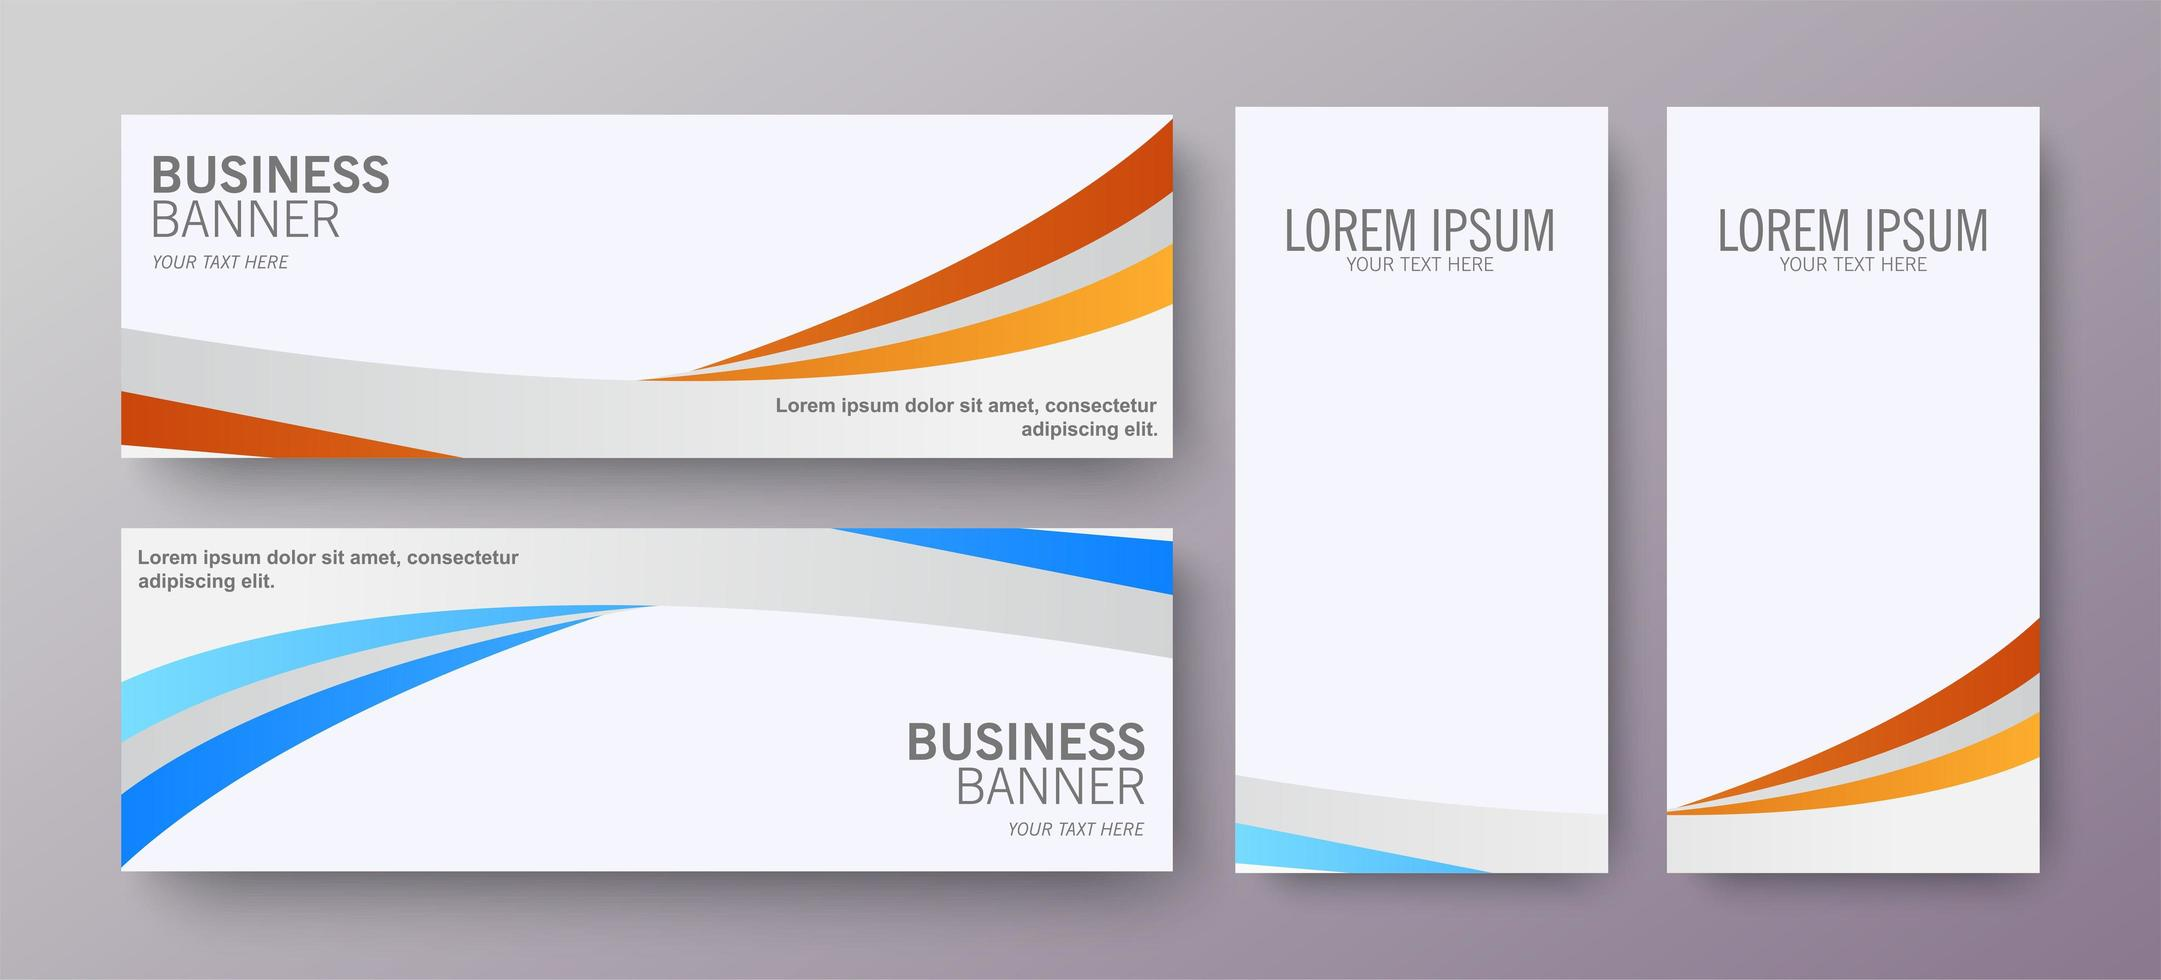 Business banner with wave design vector